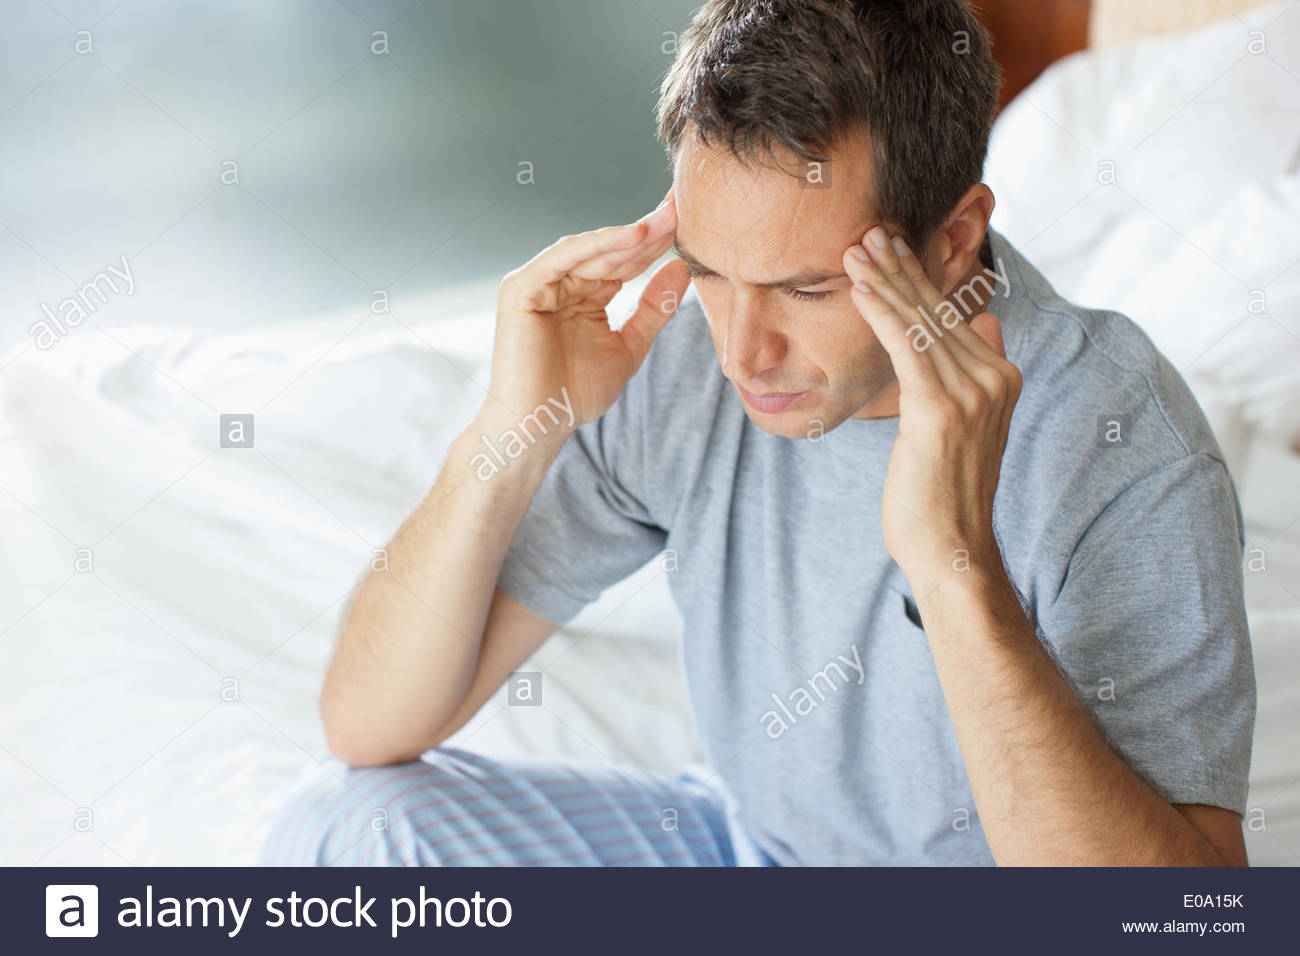 Man with headache rubbing forehead - Stock Image